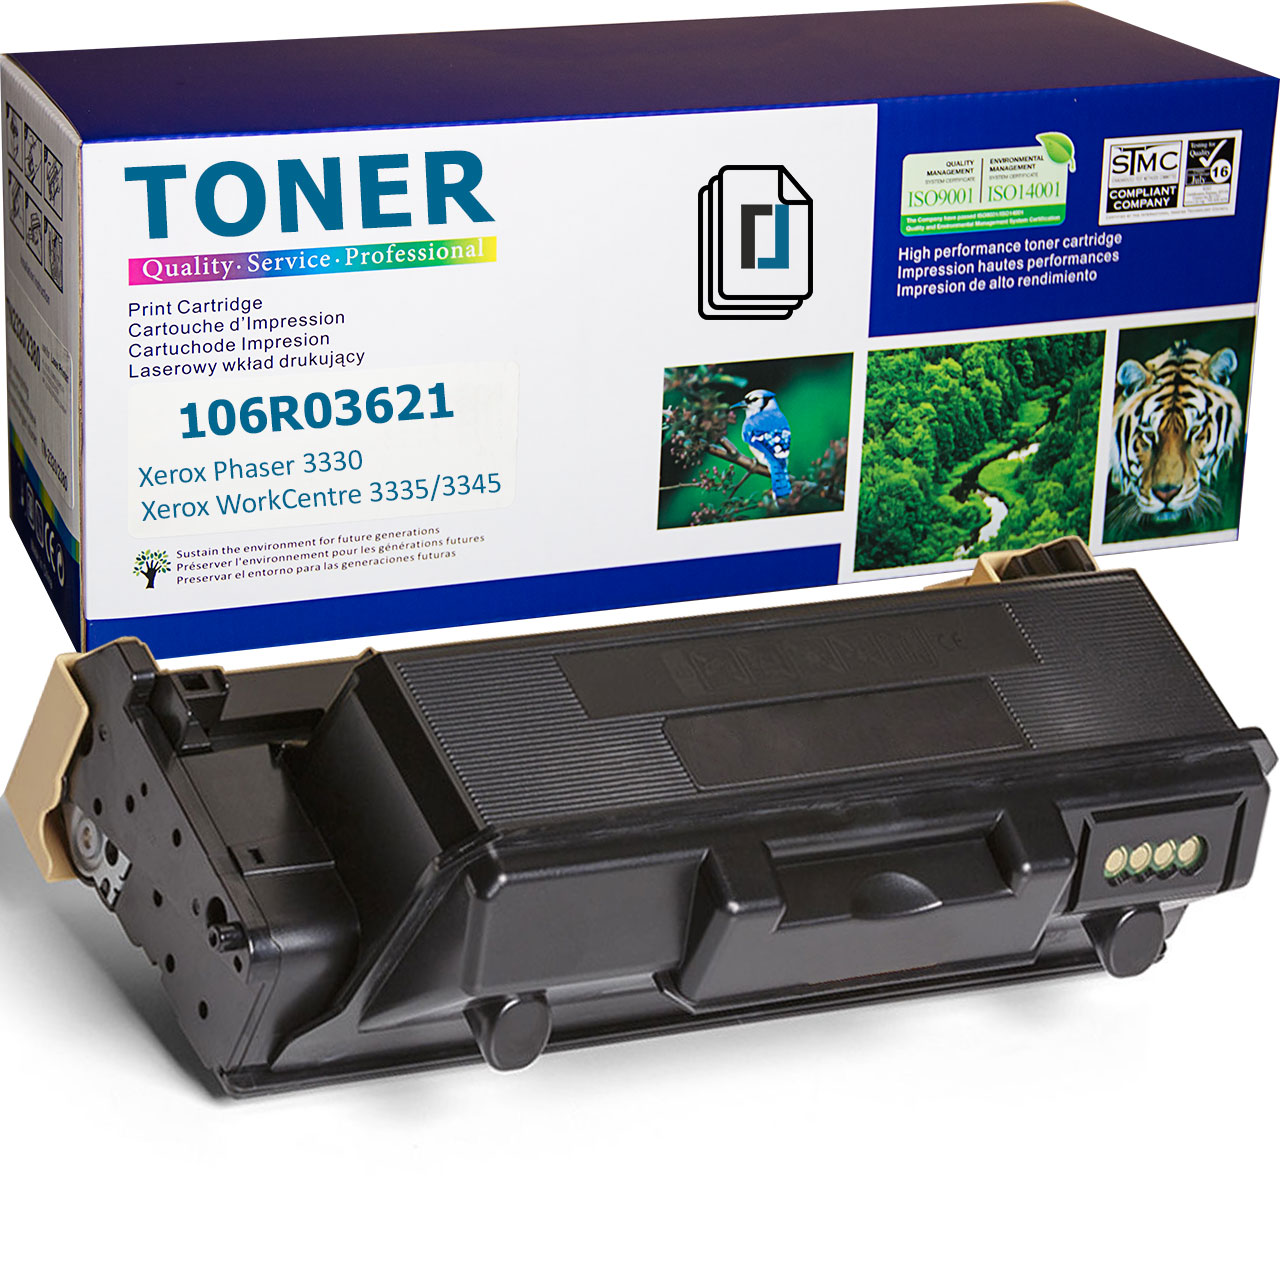 106R03621 Toner Cartridge compatible with Xerox Phaser 3330